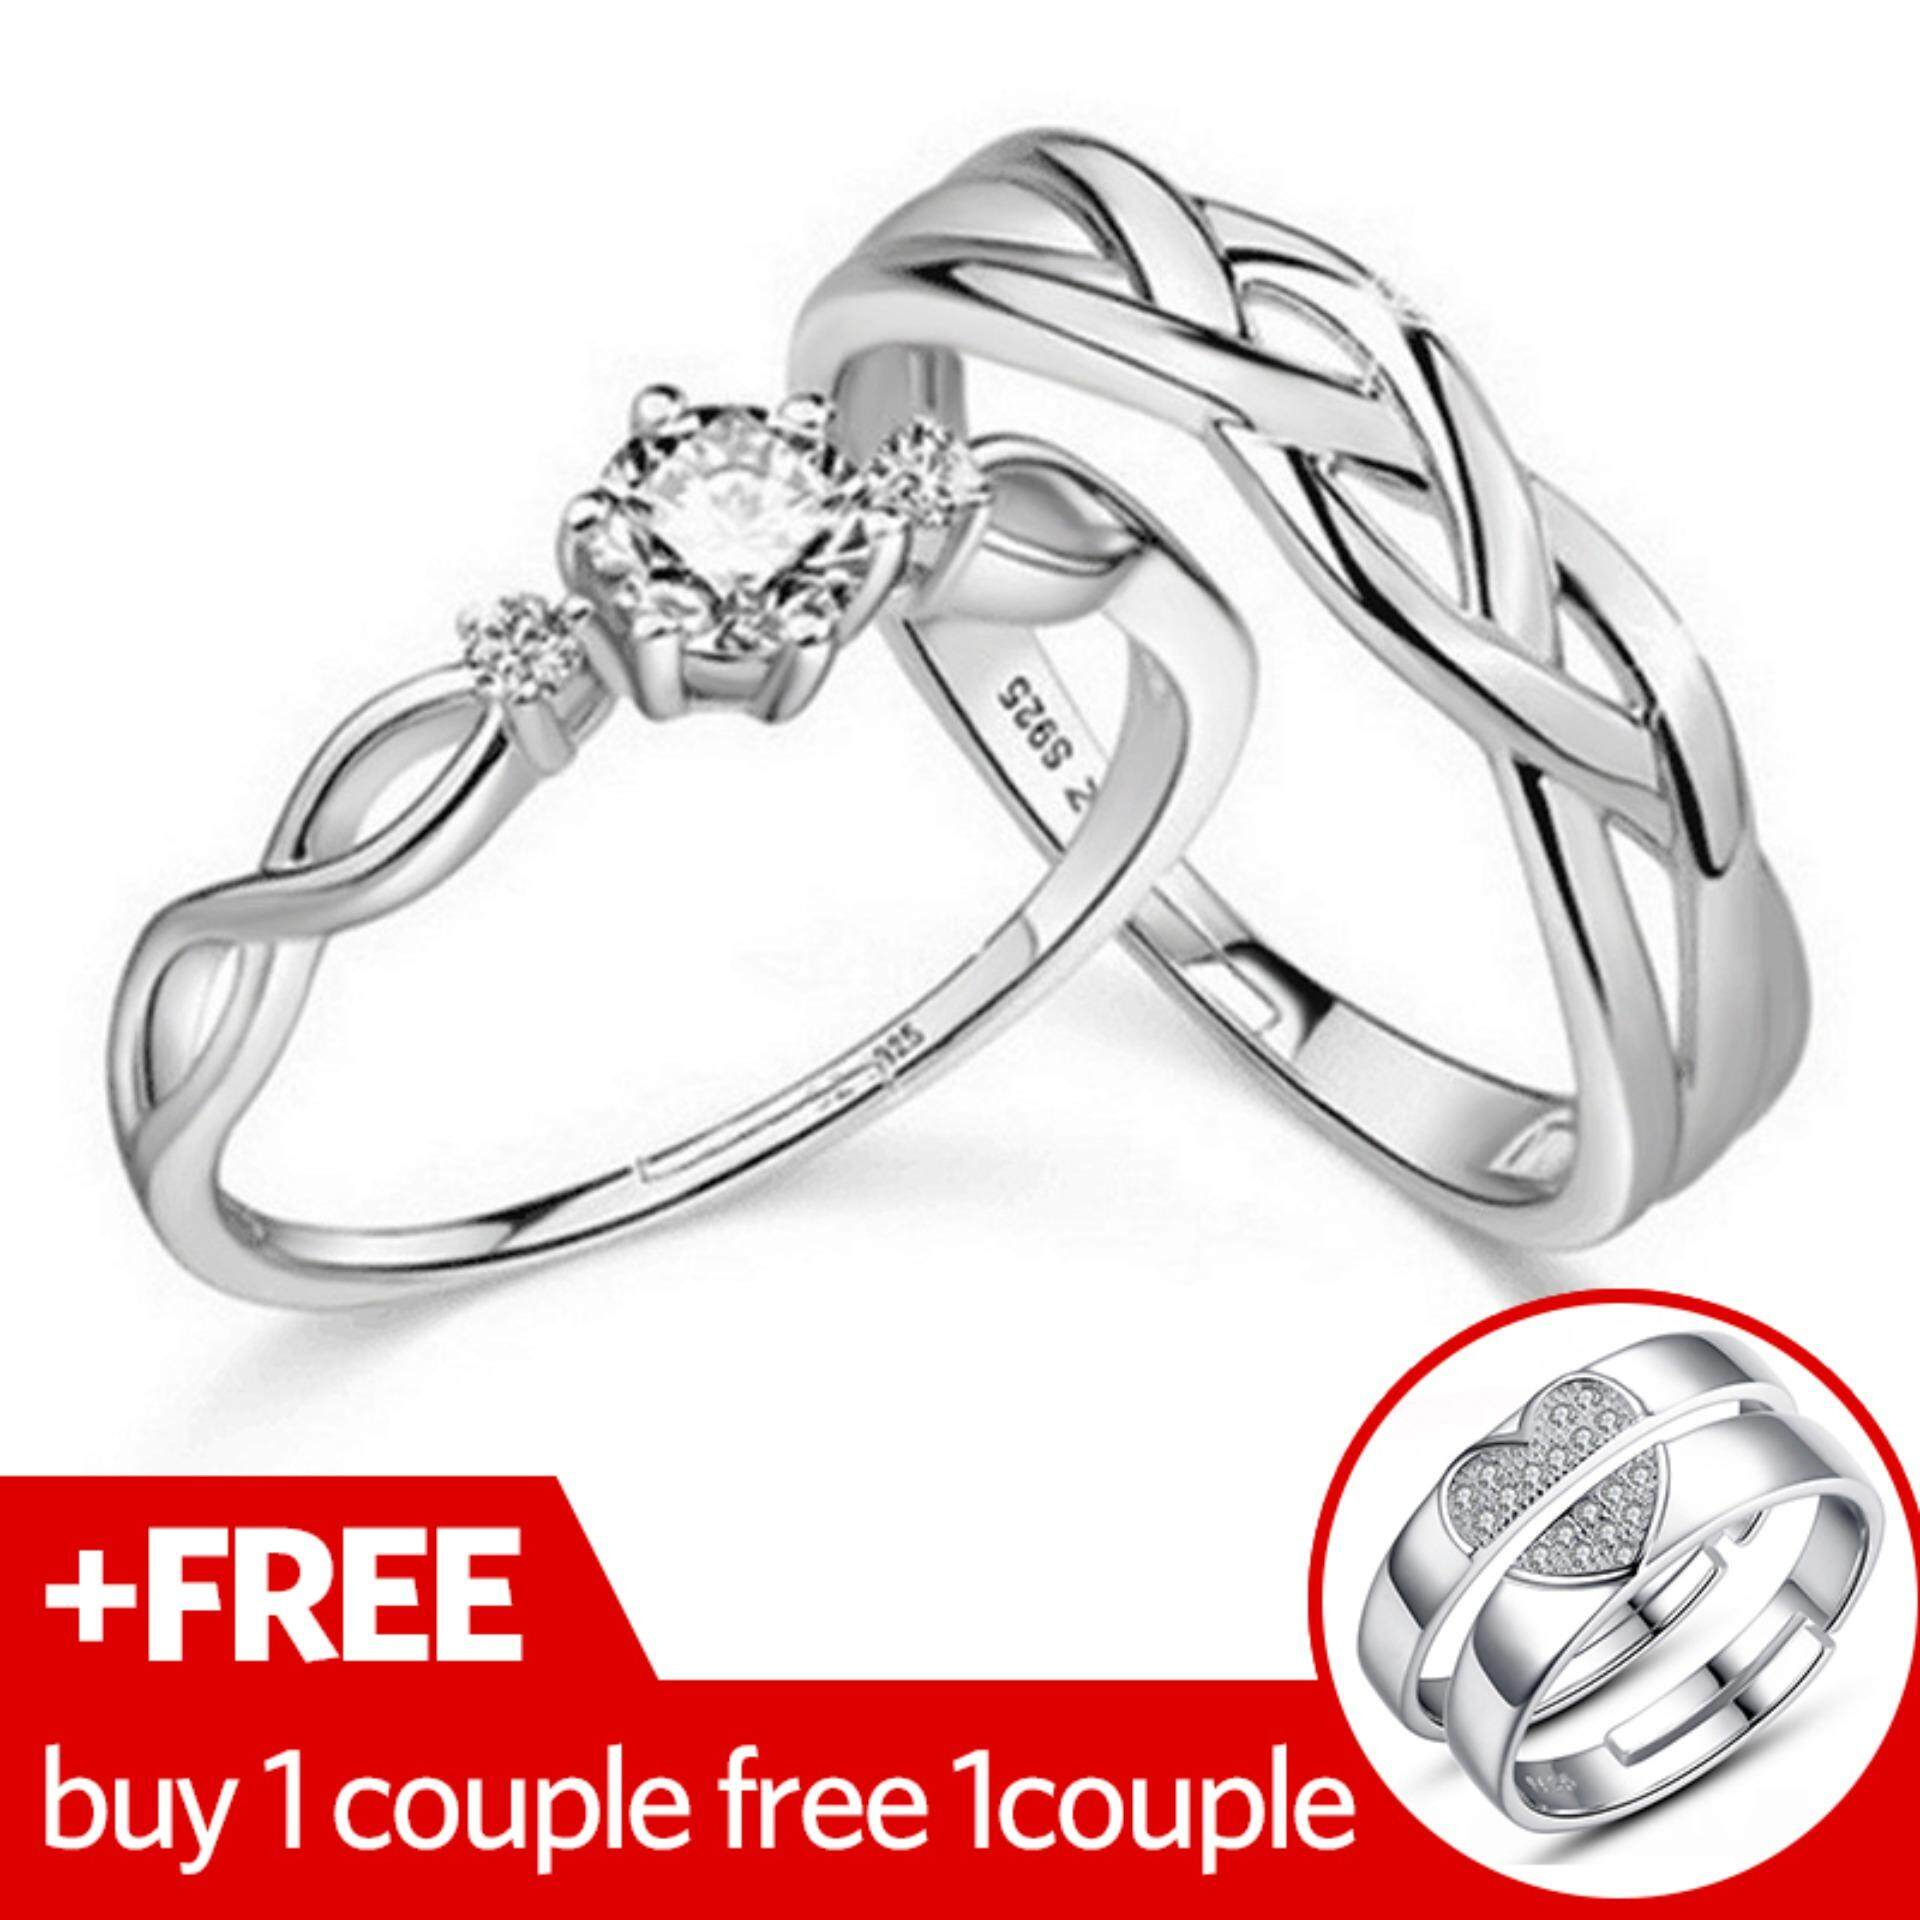 solid couple wedding band signity white engagement diamond round rings itm gold simulated ring